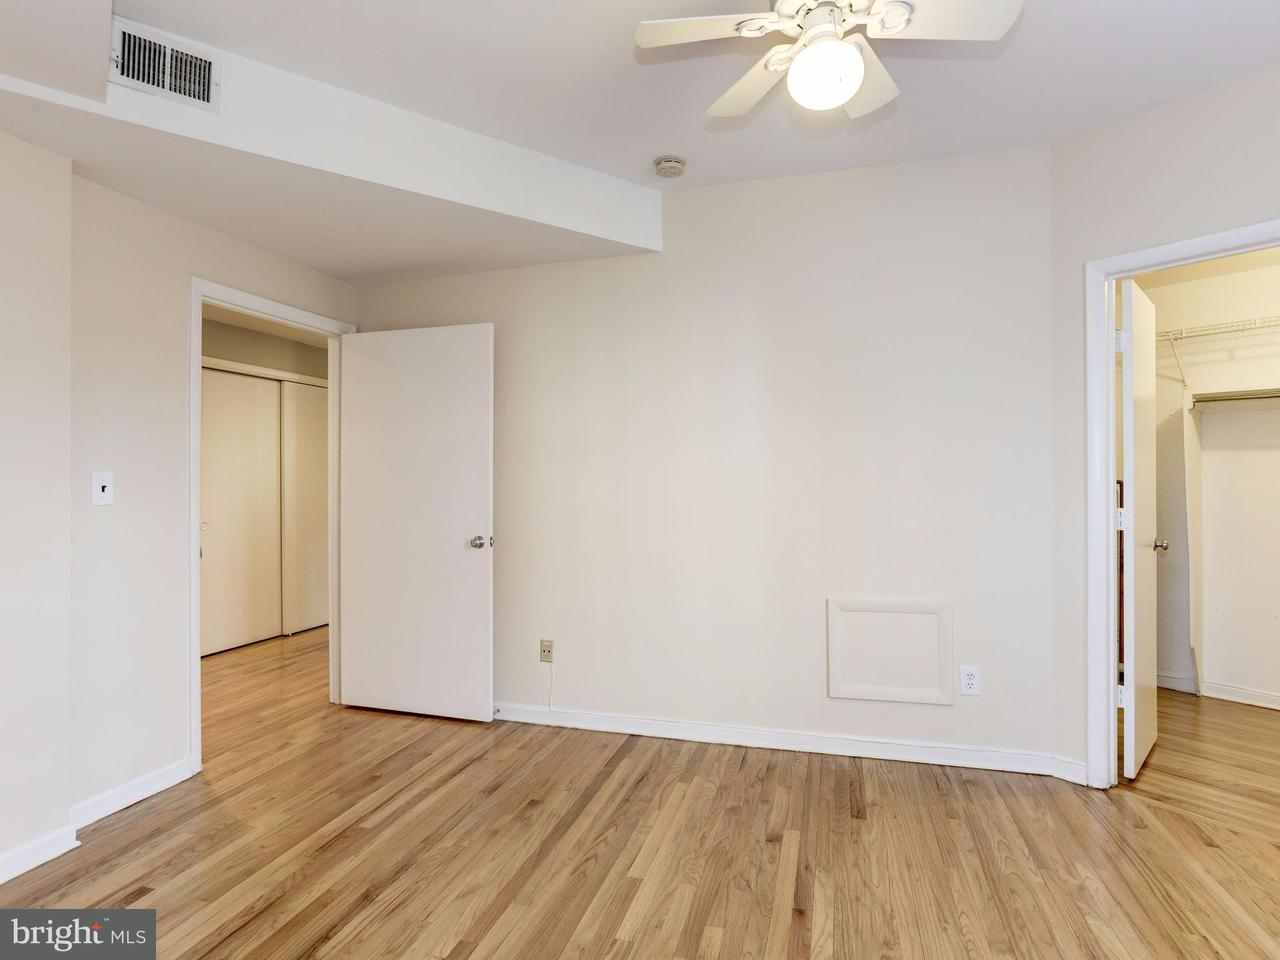 Additional photo for property listing at 1745 Kalorama Rd Nw #201 1745 Kalorama Rd Nw #201 Washington, District Of Columbia 20009 United States